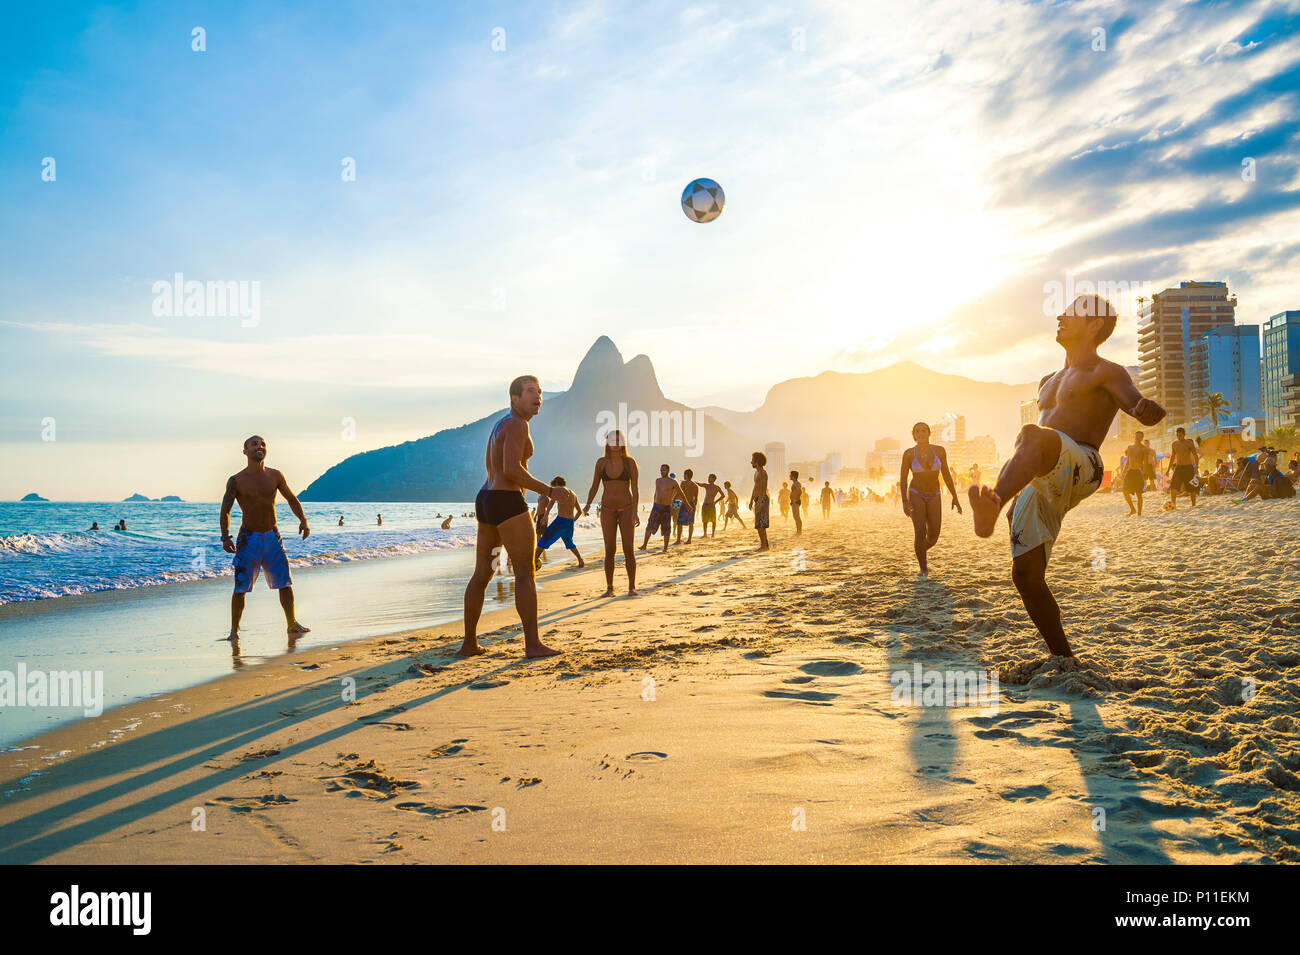 RIO DE JANEIRO - APRIL 01, 2014: Groups of young Brazilians play keepy uppy, or altinho, at sunset on the shore of Ipanema Beach at Posto 9 - Stock Image